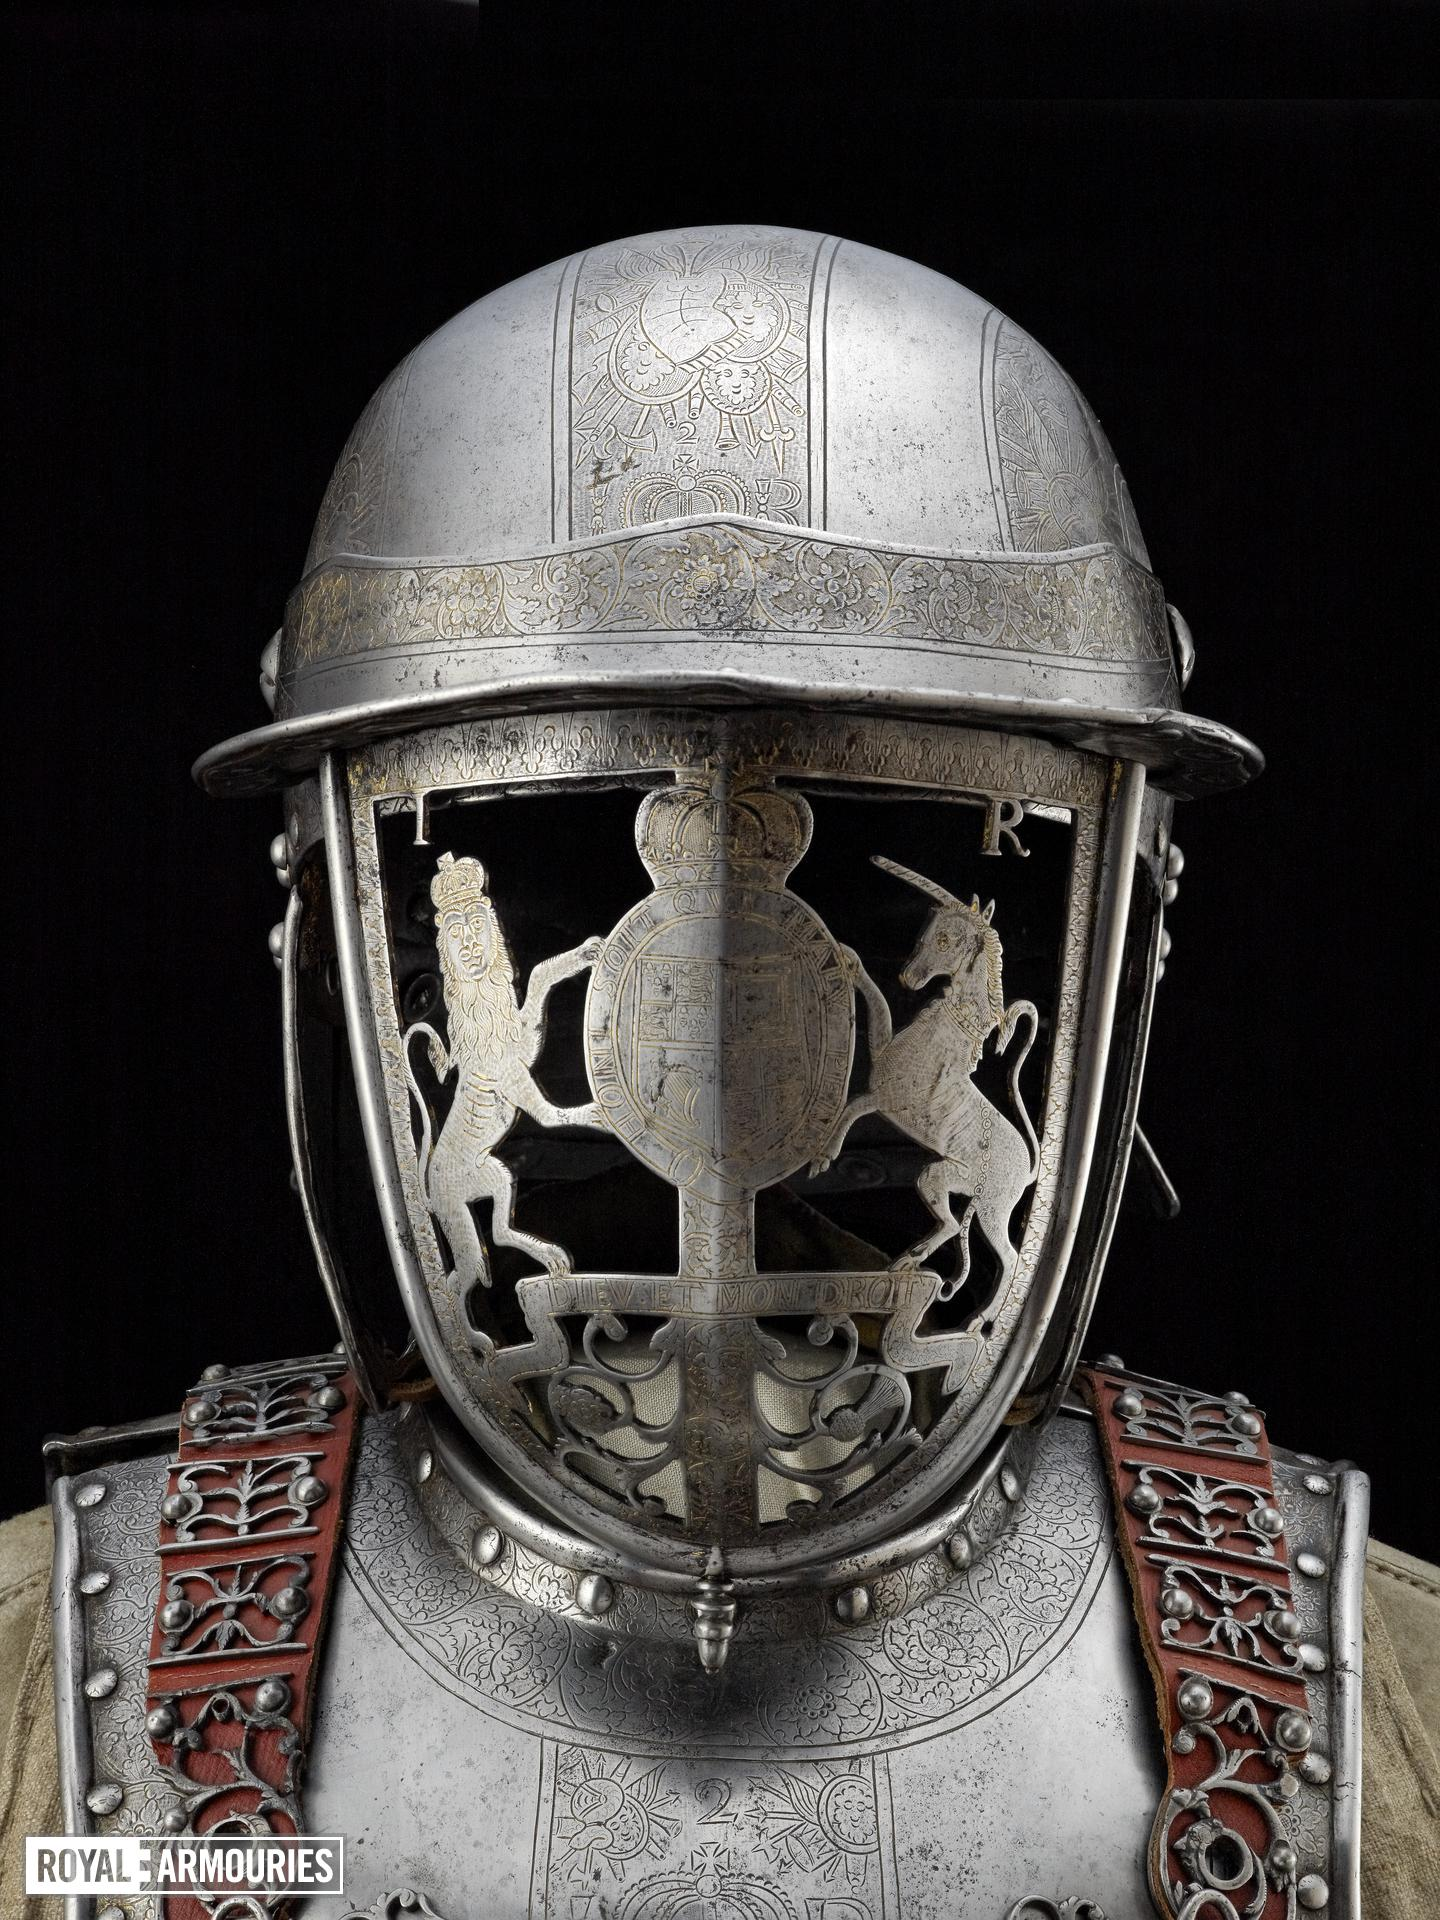 Armour of King James II (1633-1701) by Richard Hoden